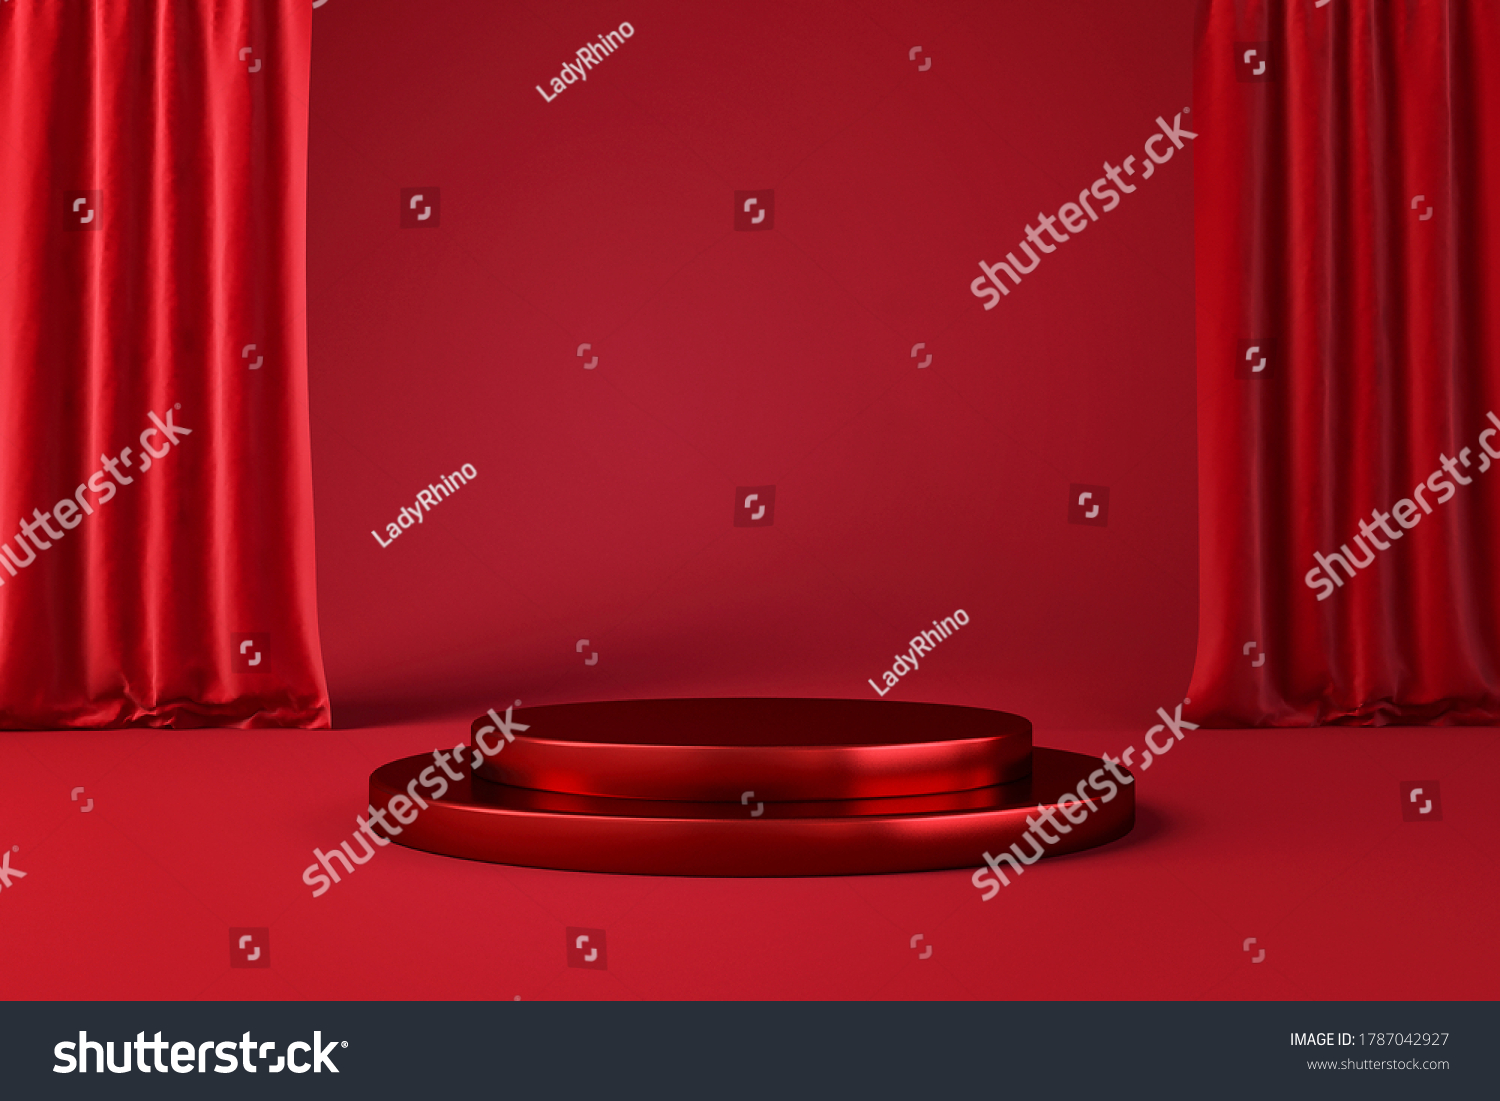 stock-photo-stage-podium-or-product-stan